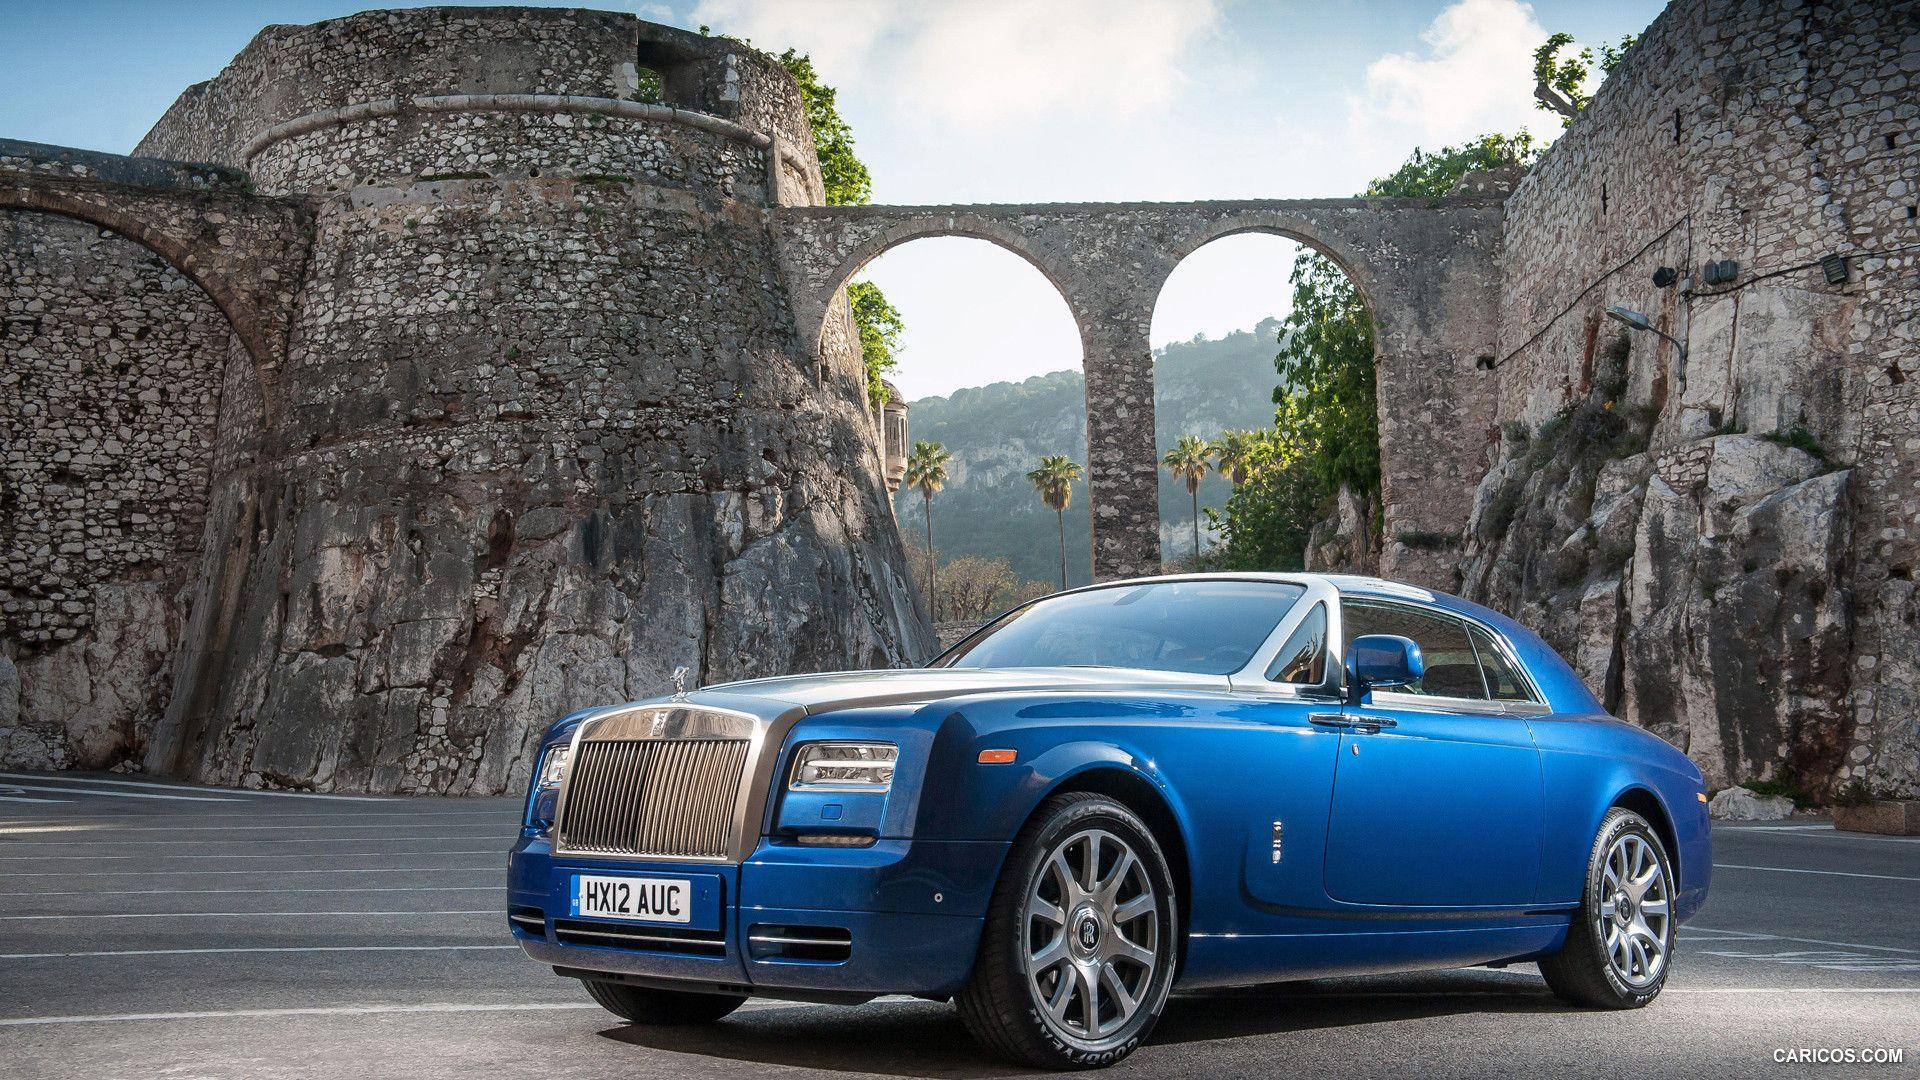 Rolls-Royce Phantom Coupe Hd Wallpaper 17633 | TransGK